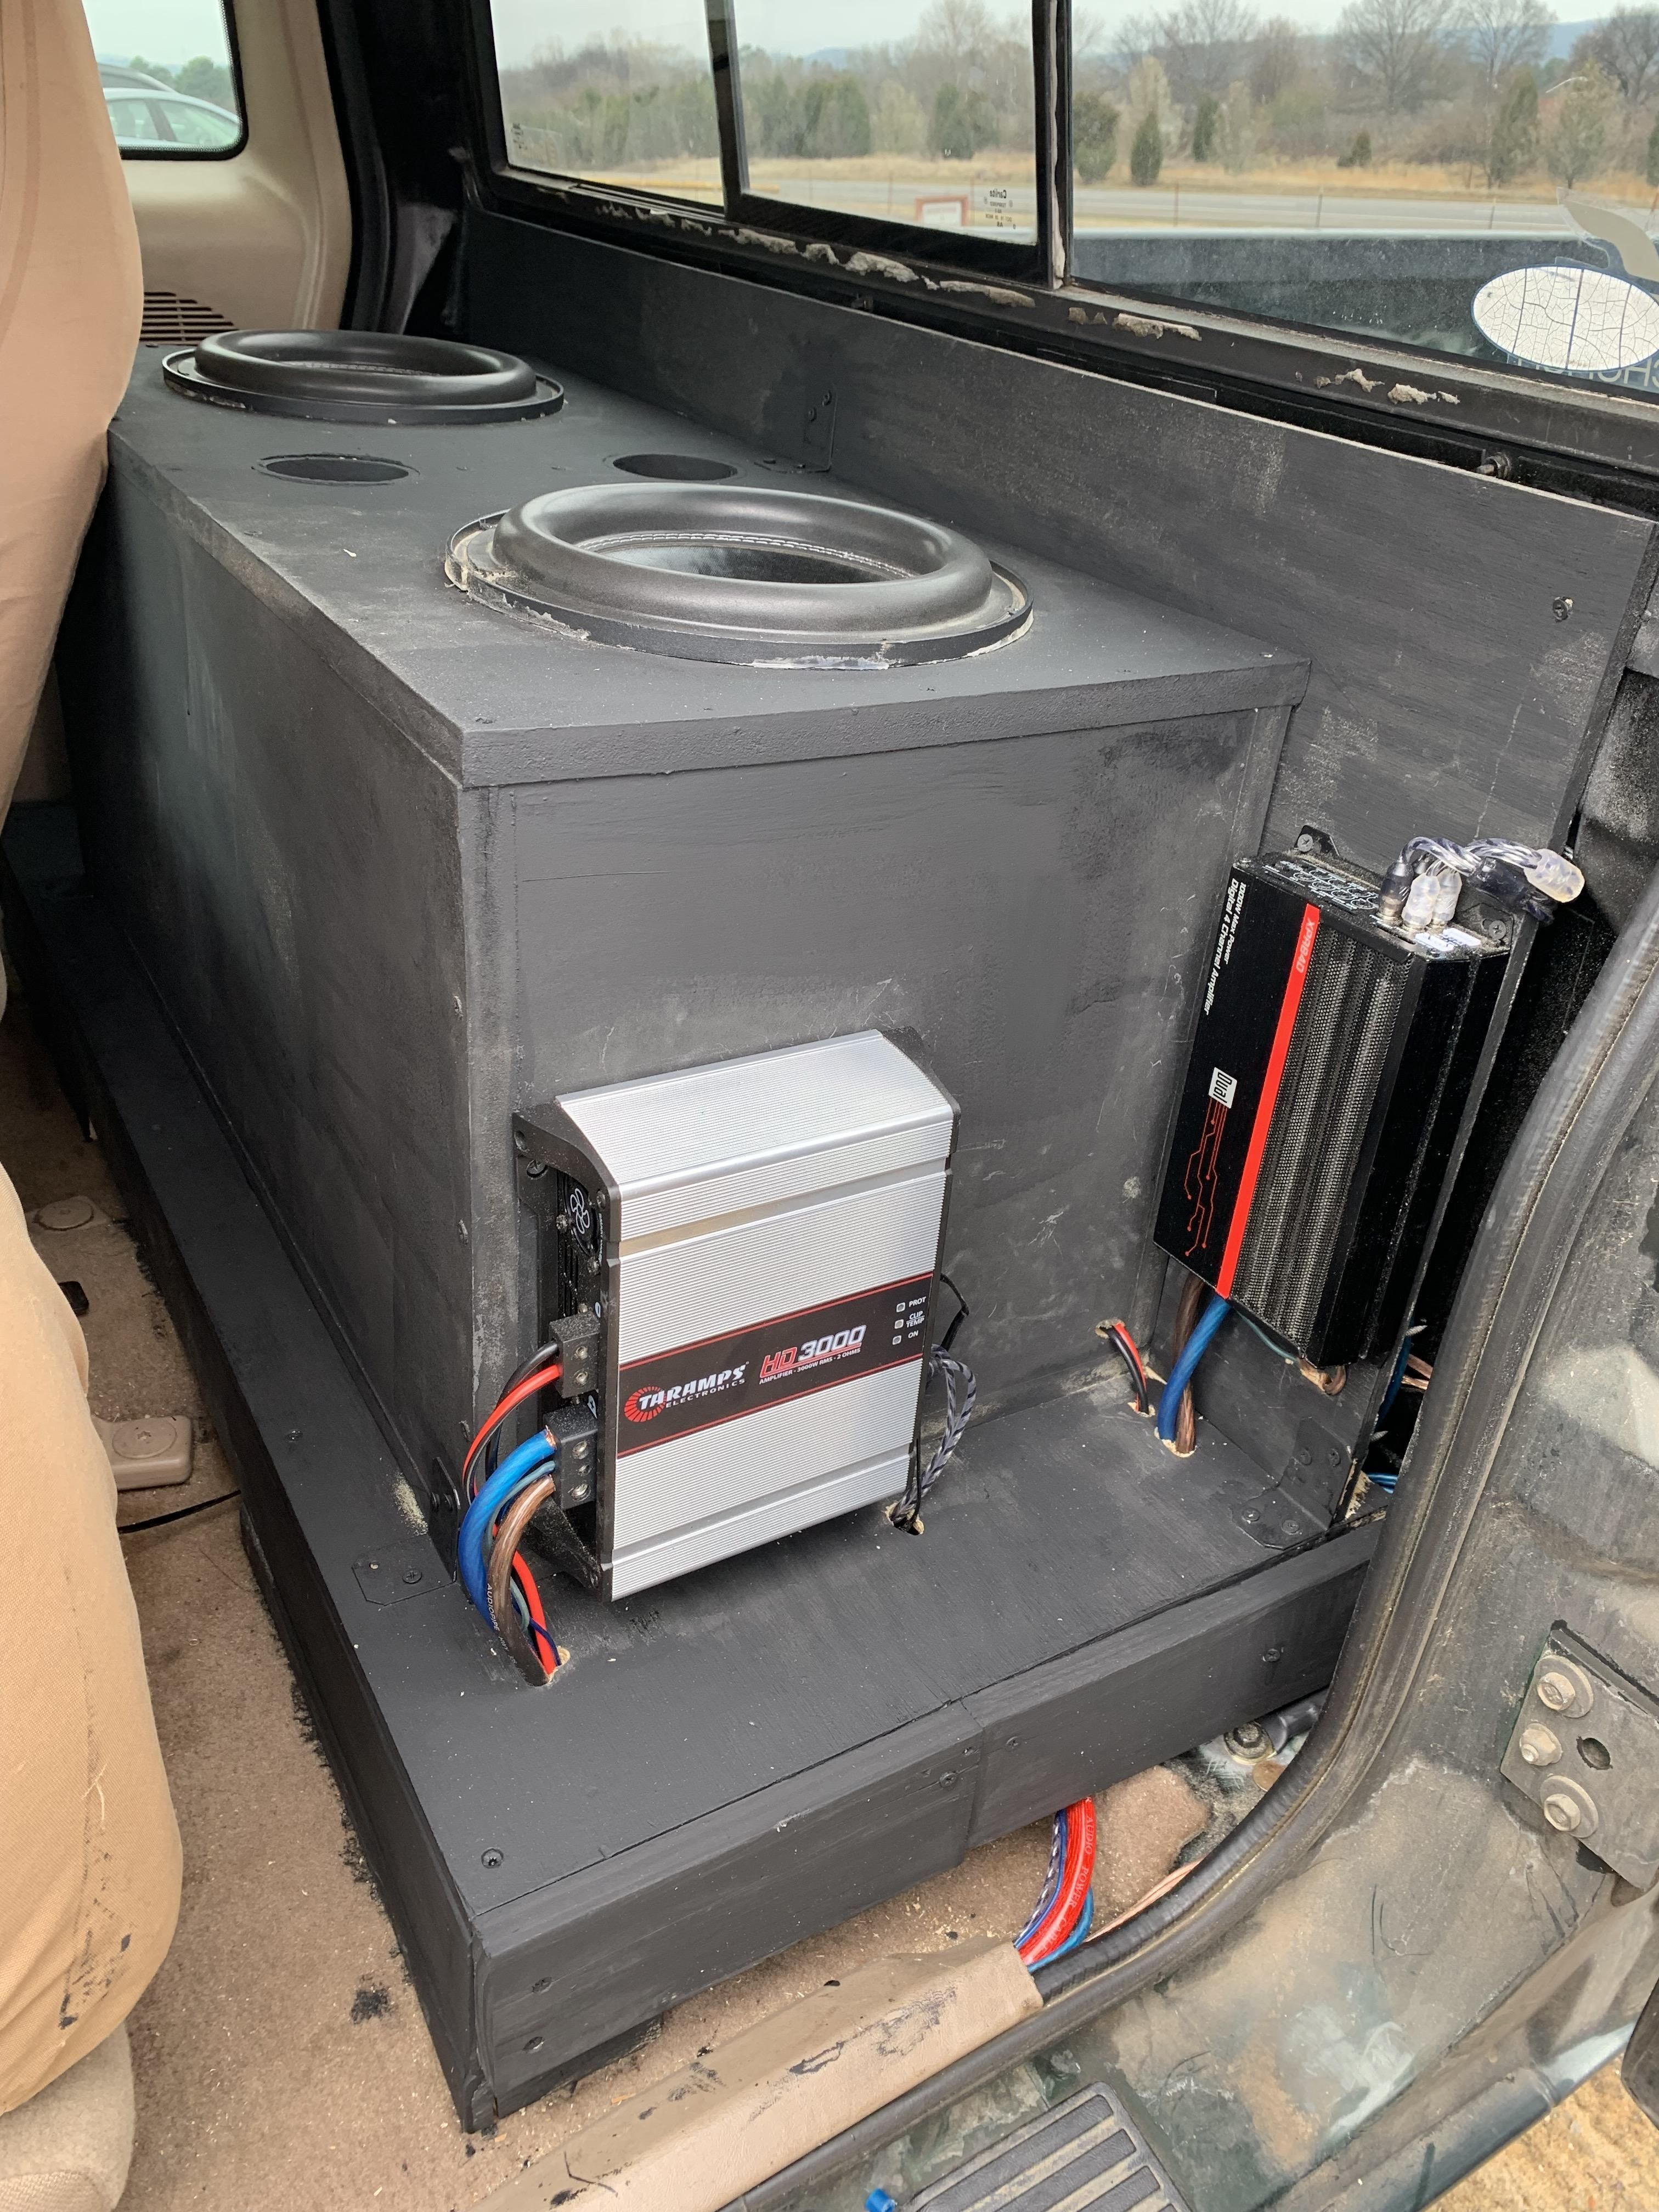 2 American Bass Xfl 10s 4 Nvx Vsp68s Taramps Hd3000 And Dual Xpr84d Box Tuned To Around 32hz All Car Audio Installation Car Audio Battery Car Audio Systems